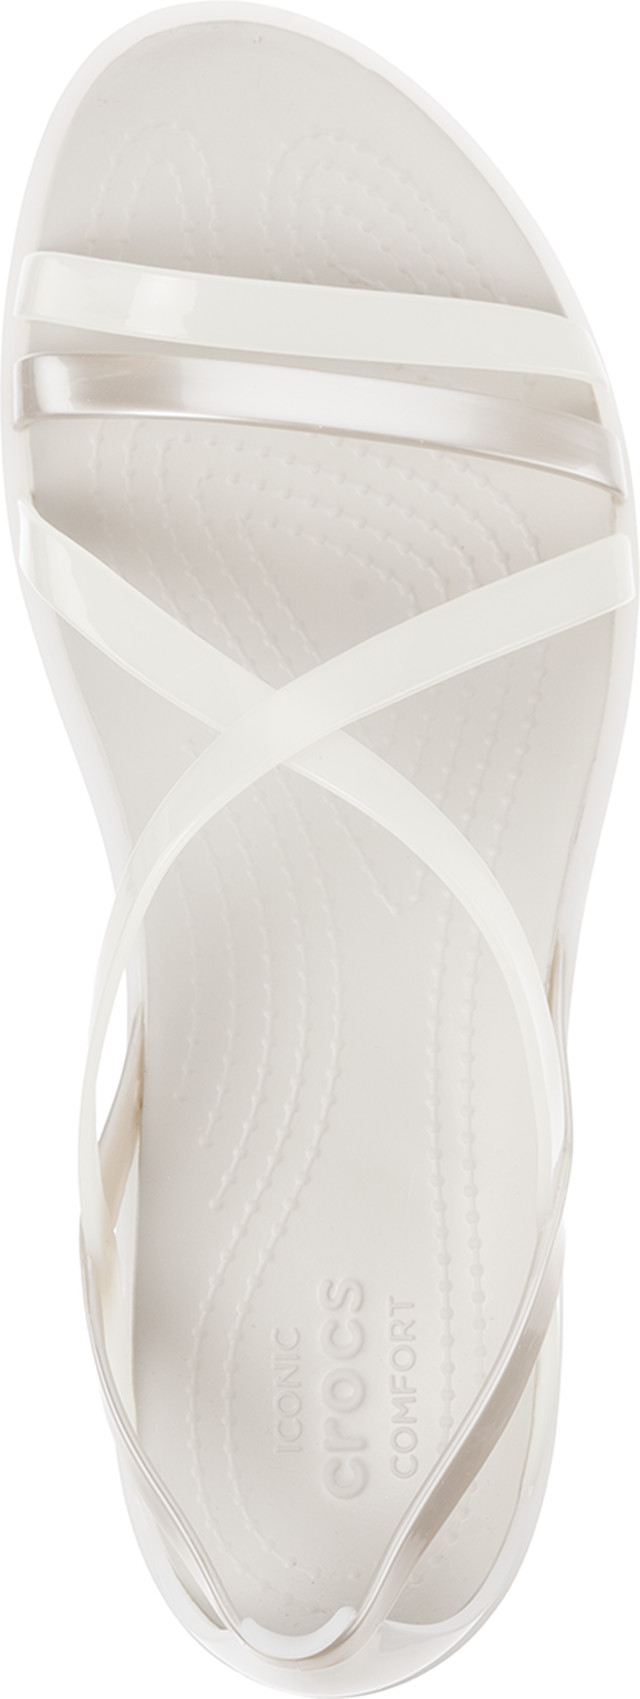 Sandały Crocs  <br/><small>ISABELLA STRAPPY SANDAL OYSTER/PEARL WHITE </small>  204915-17B